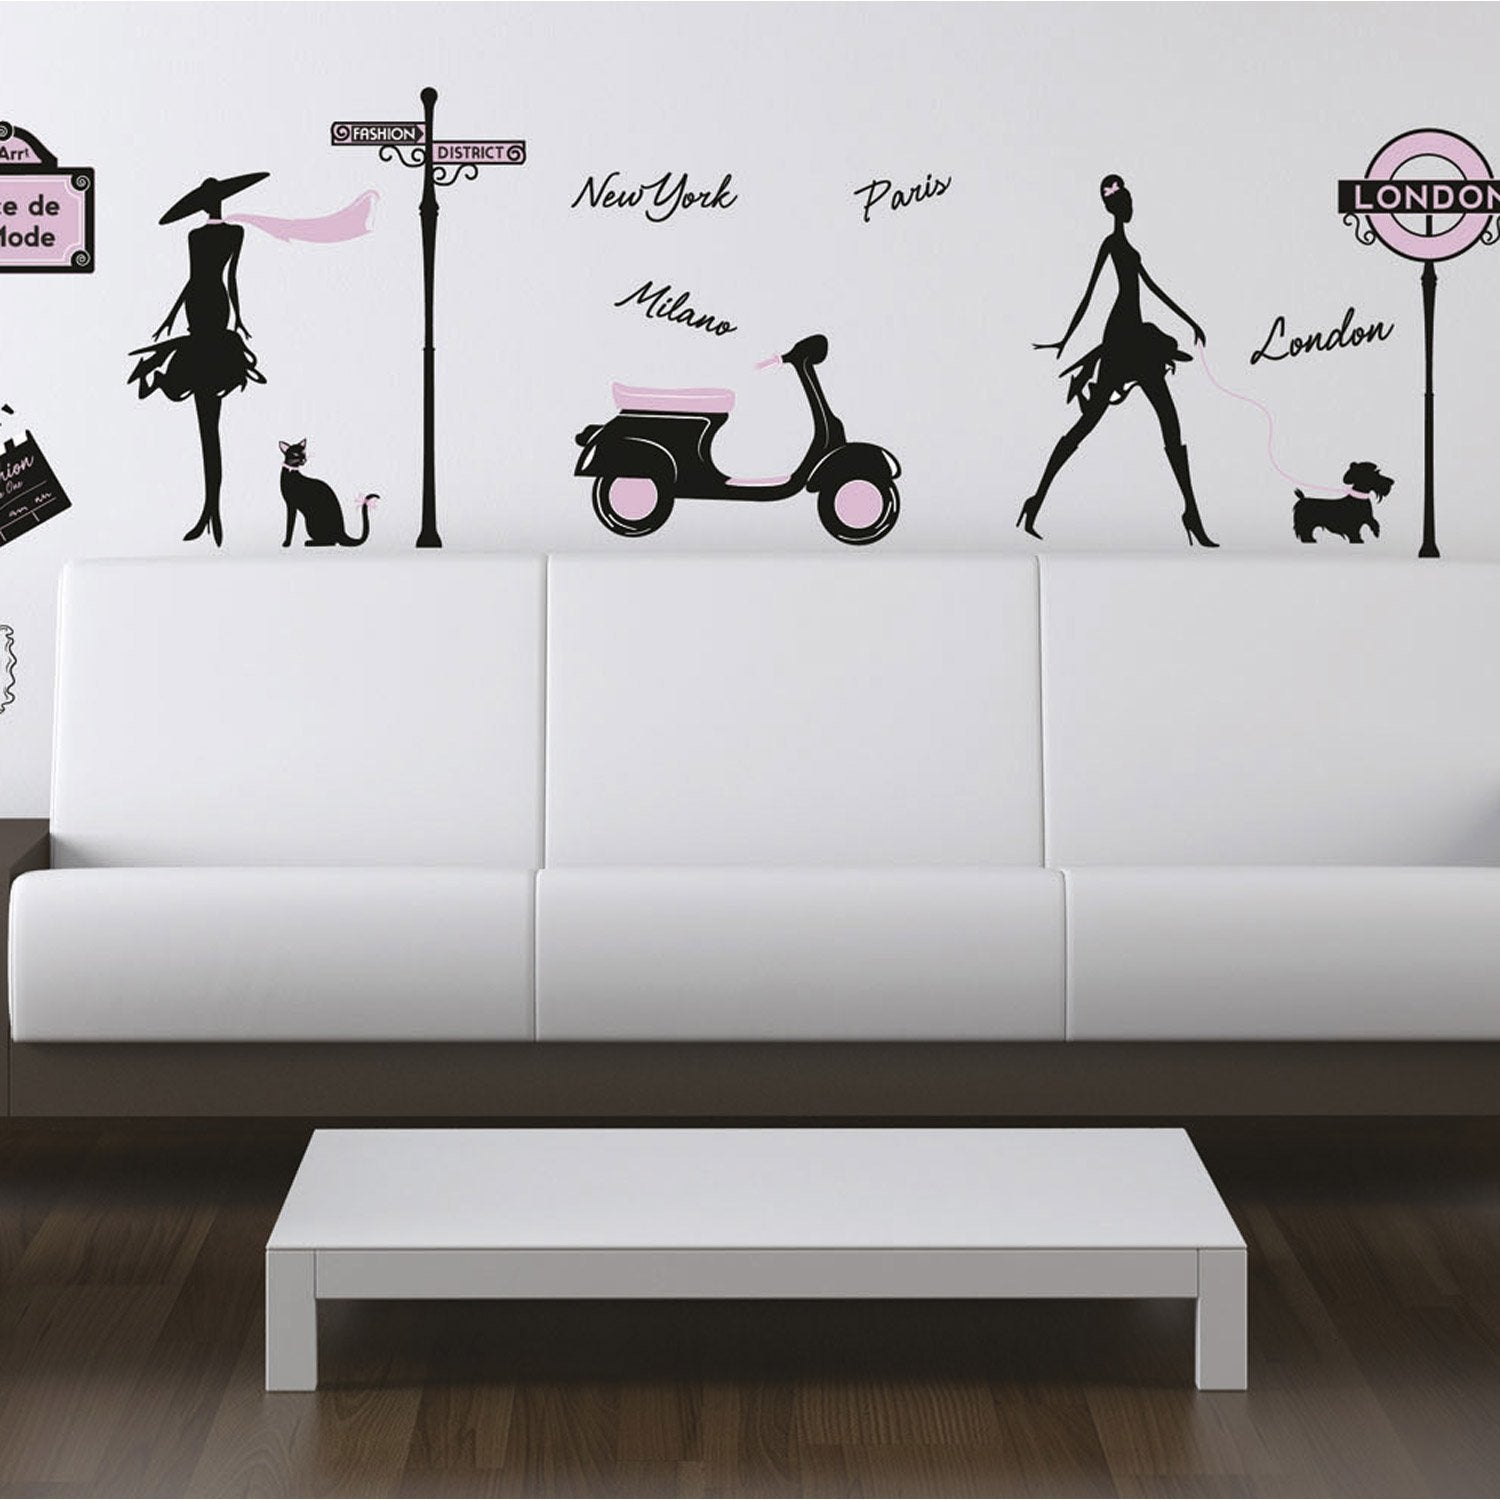 Sticker world fashion 50 cm x 70 cm leroy merlin - Ou acheter stickers muraux ...